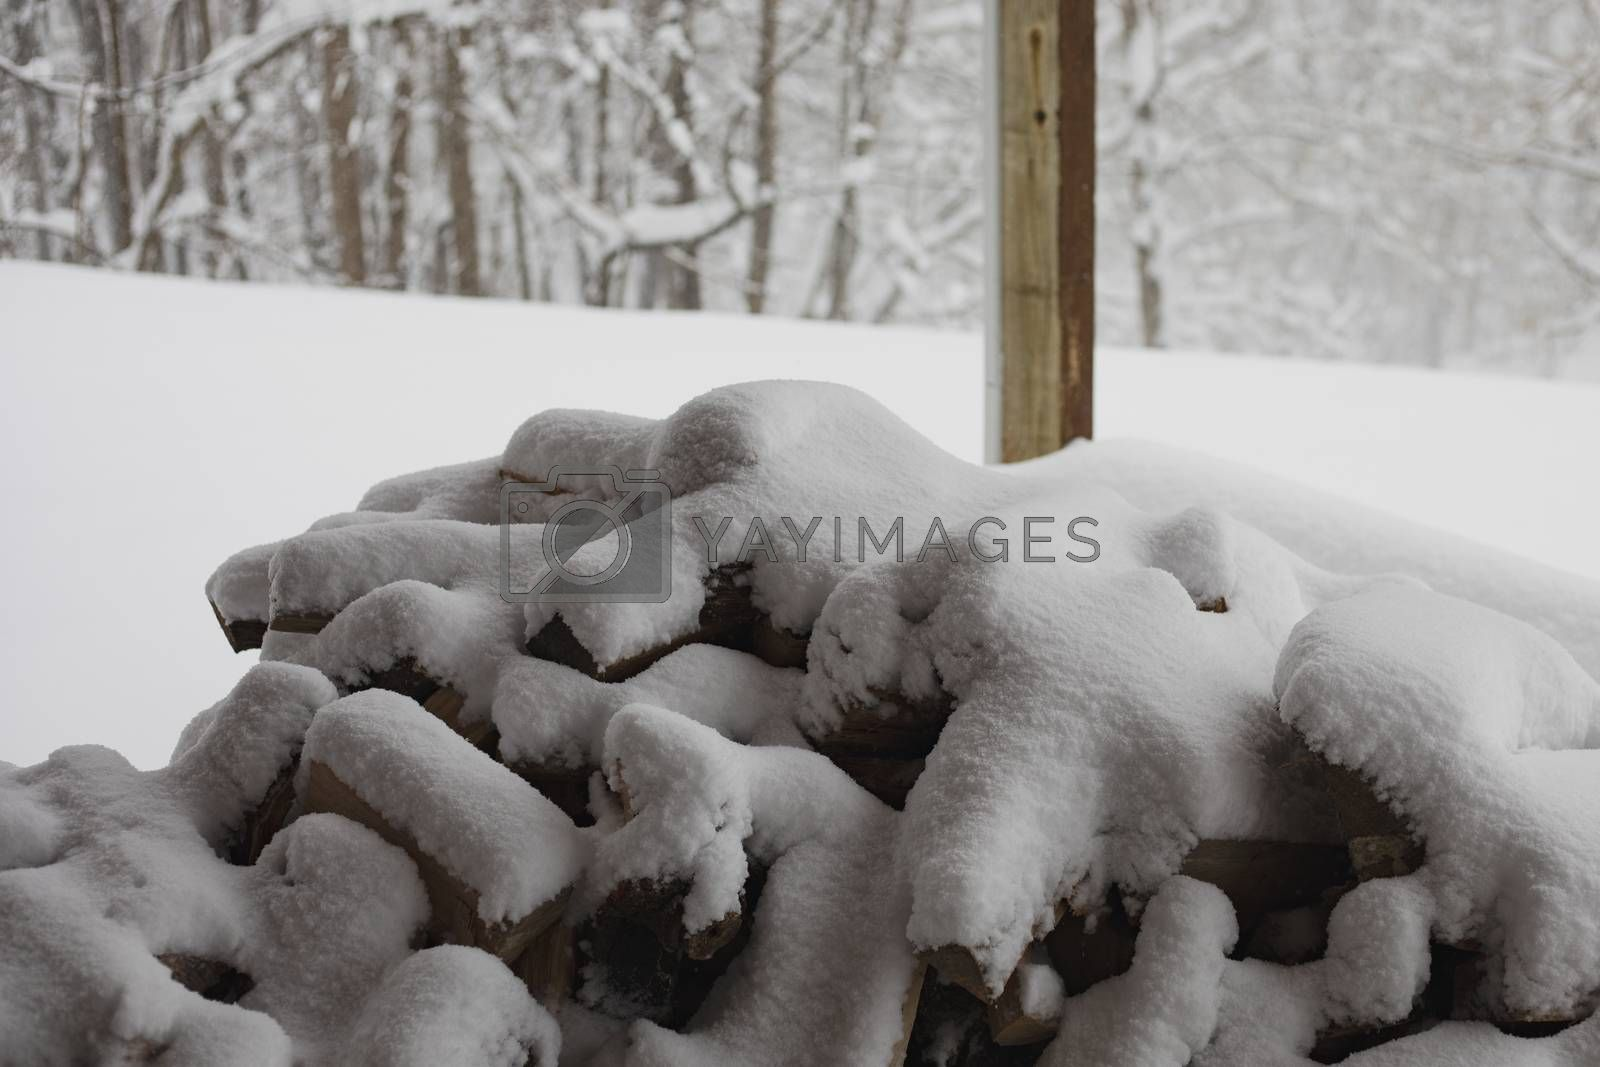 Wood pile is covered with snow following Winter Storm Diego.